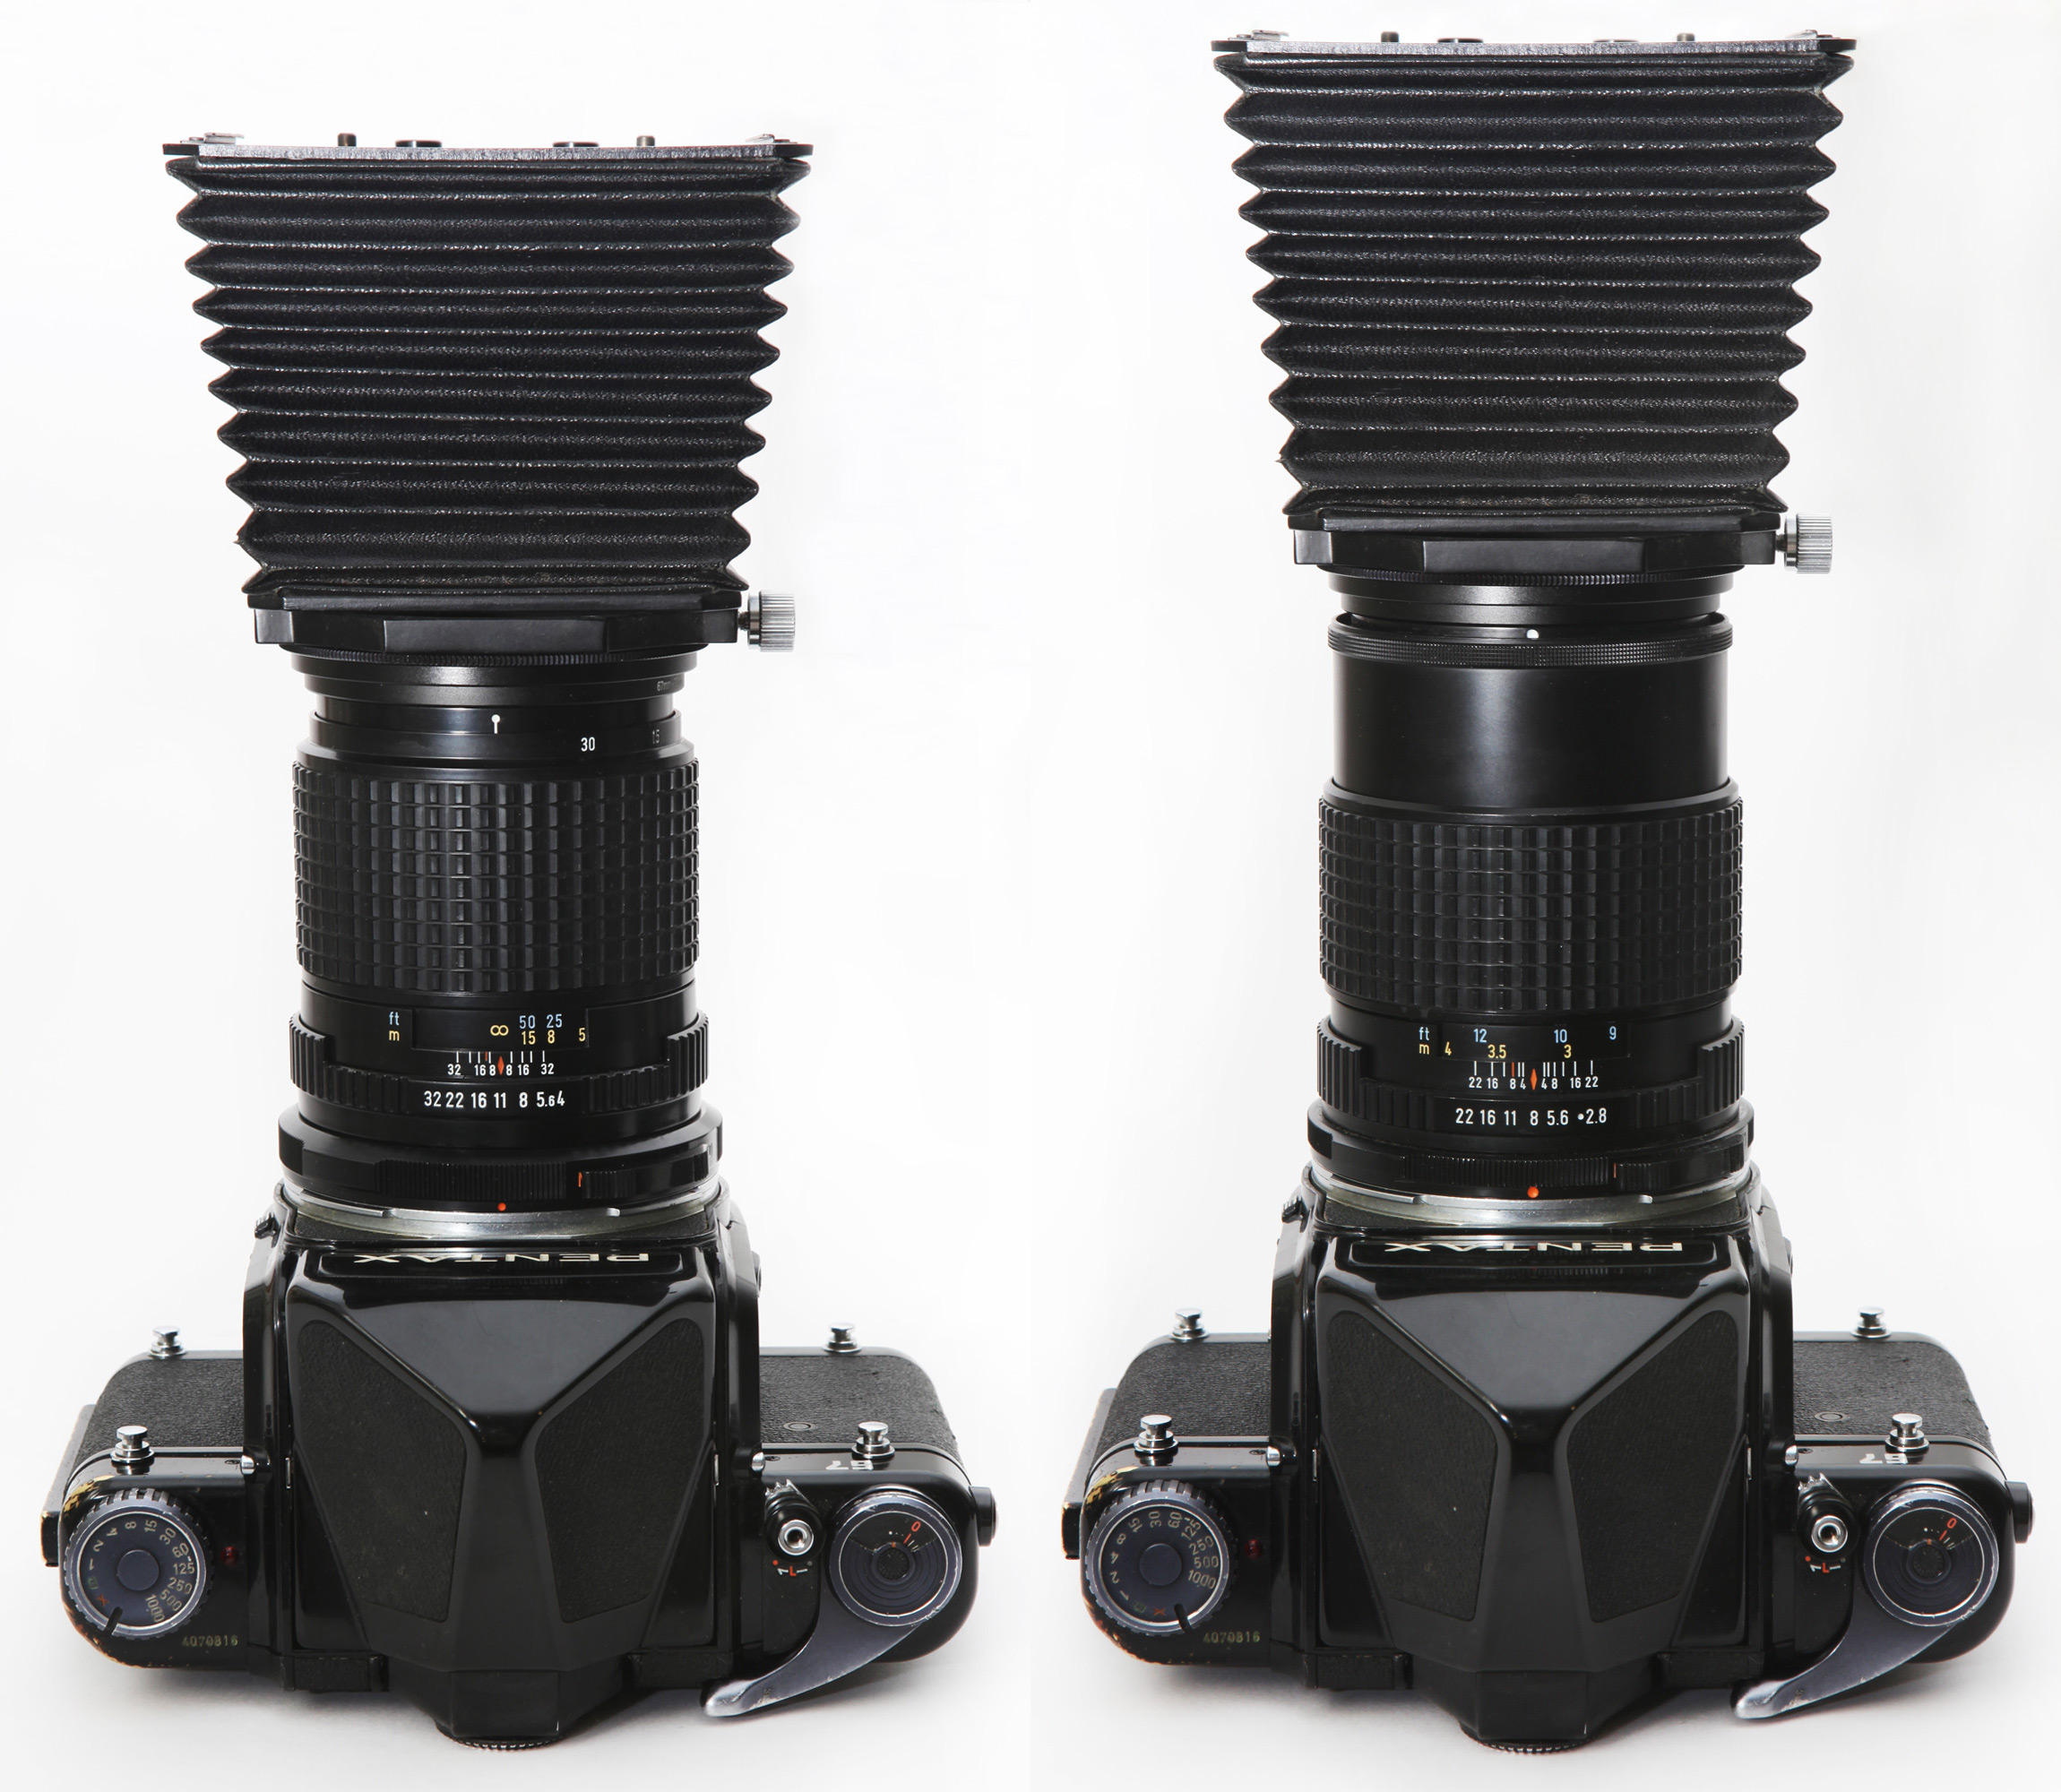 Mamiya RB67 and RZ67 bellows hood in 90mm and 127mm positions mounted on 135mm Macro F4 and 165mm F2.8